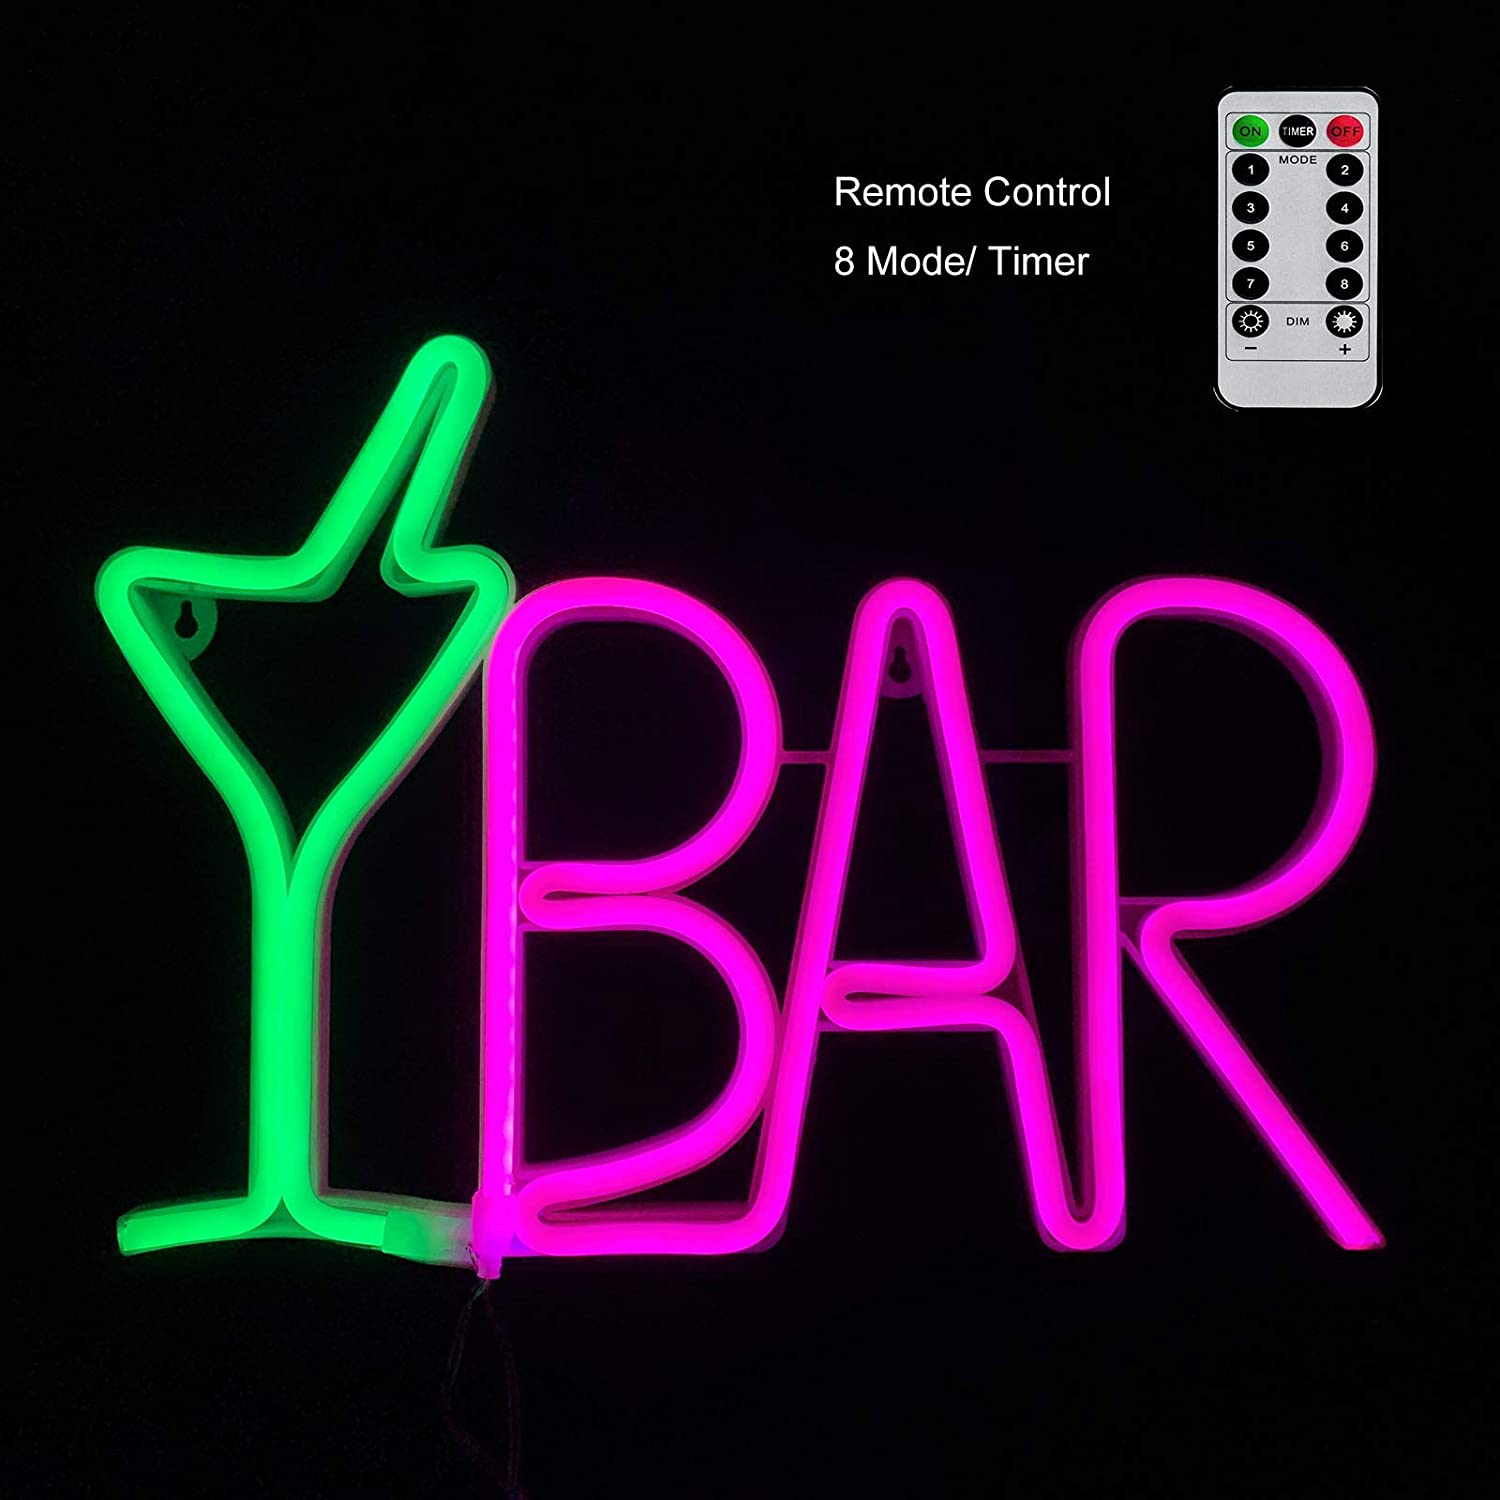 LED Bar Sign Neon Light for Business Remote 8 Modes(Flash) Green Cocktail Glass & Pink BAR Light Up Letter Beer Sign USB Wall Art Décor for Pub, Bistro, Party,Man Cave,Home,Basement(ABARLUF8M)